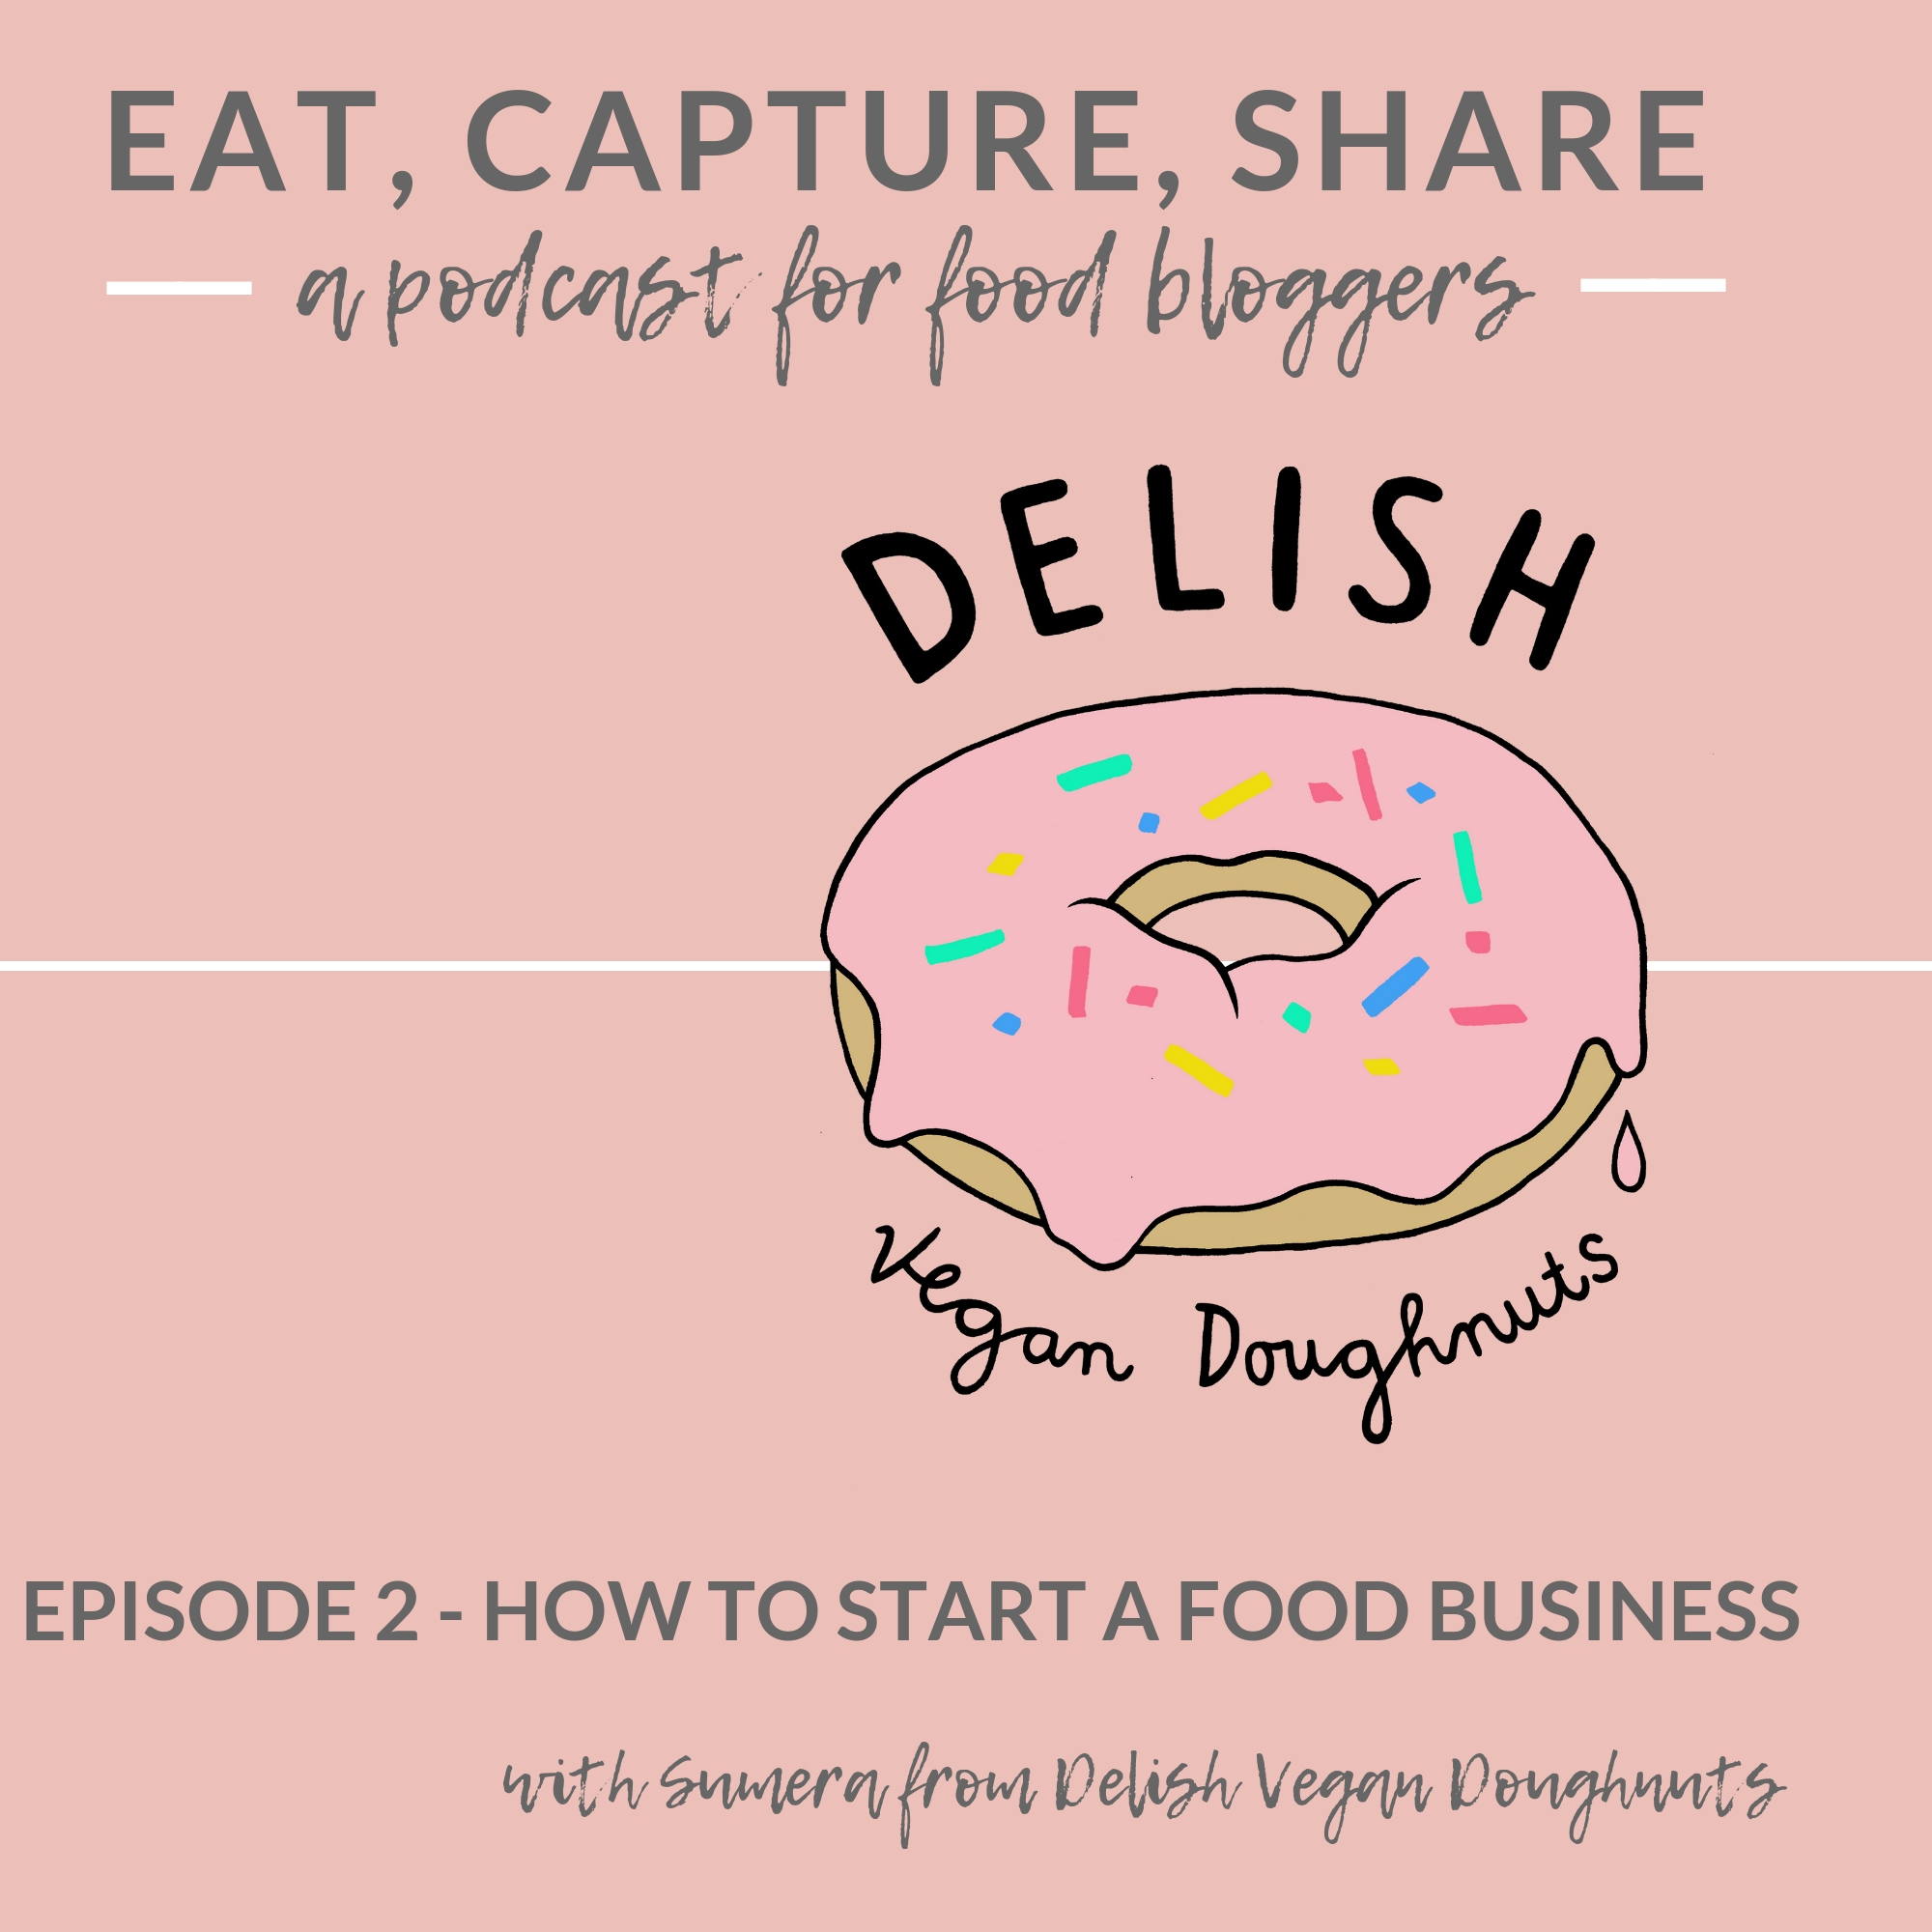 eat capture share podcast start food business.jpg